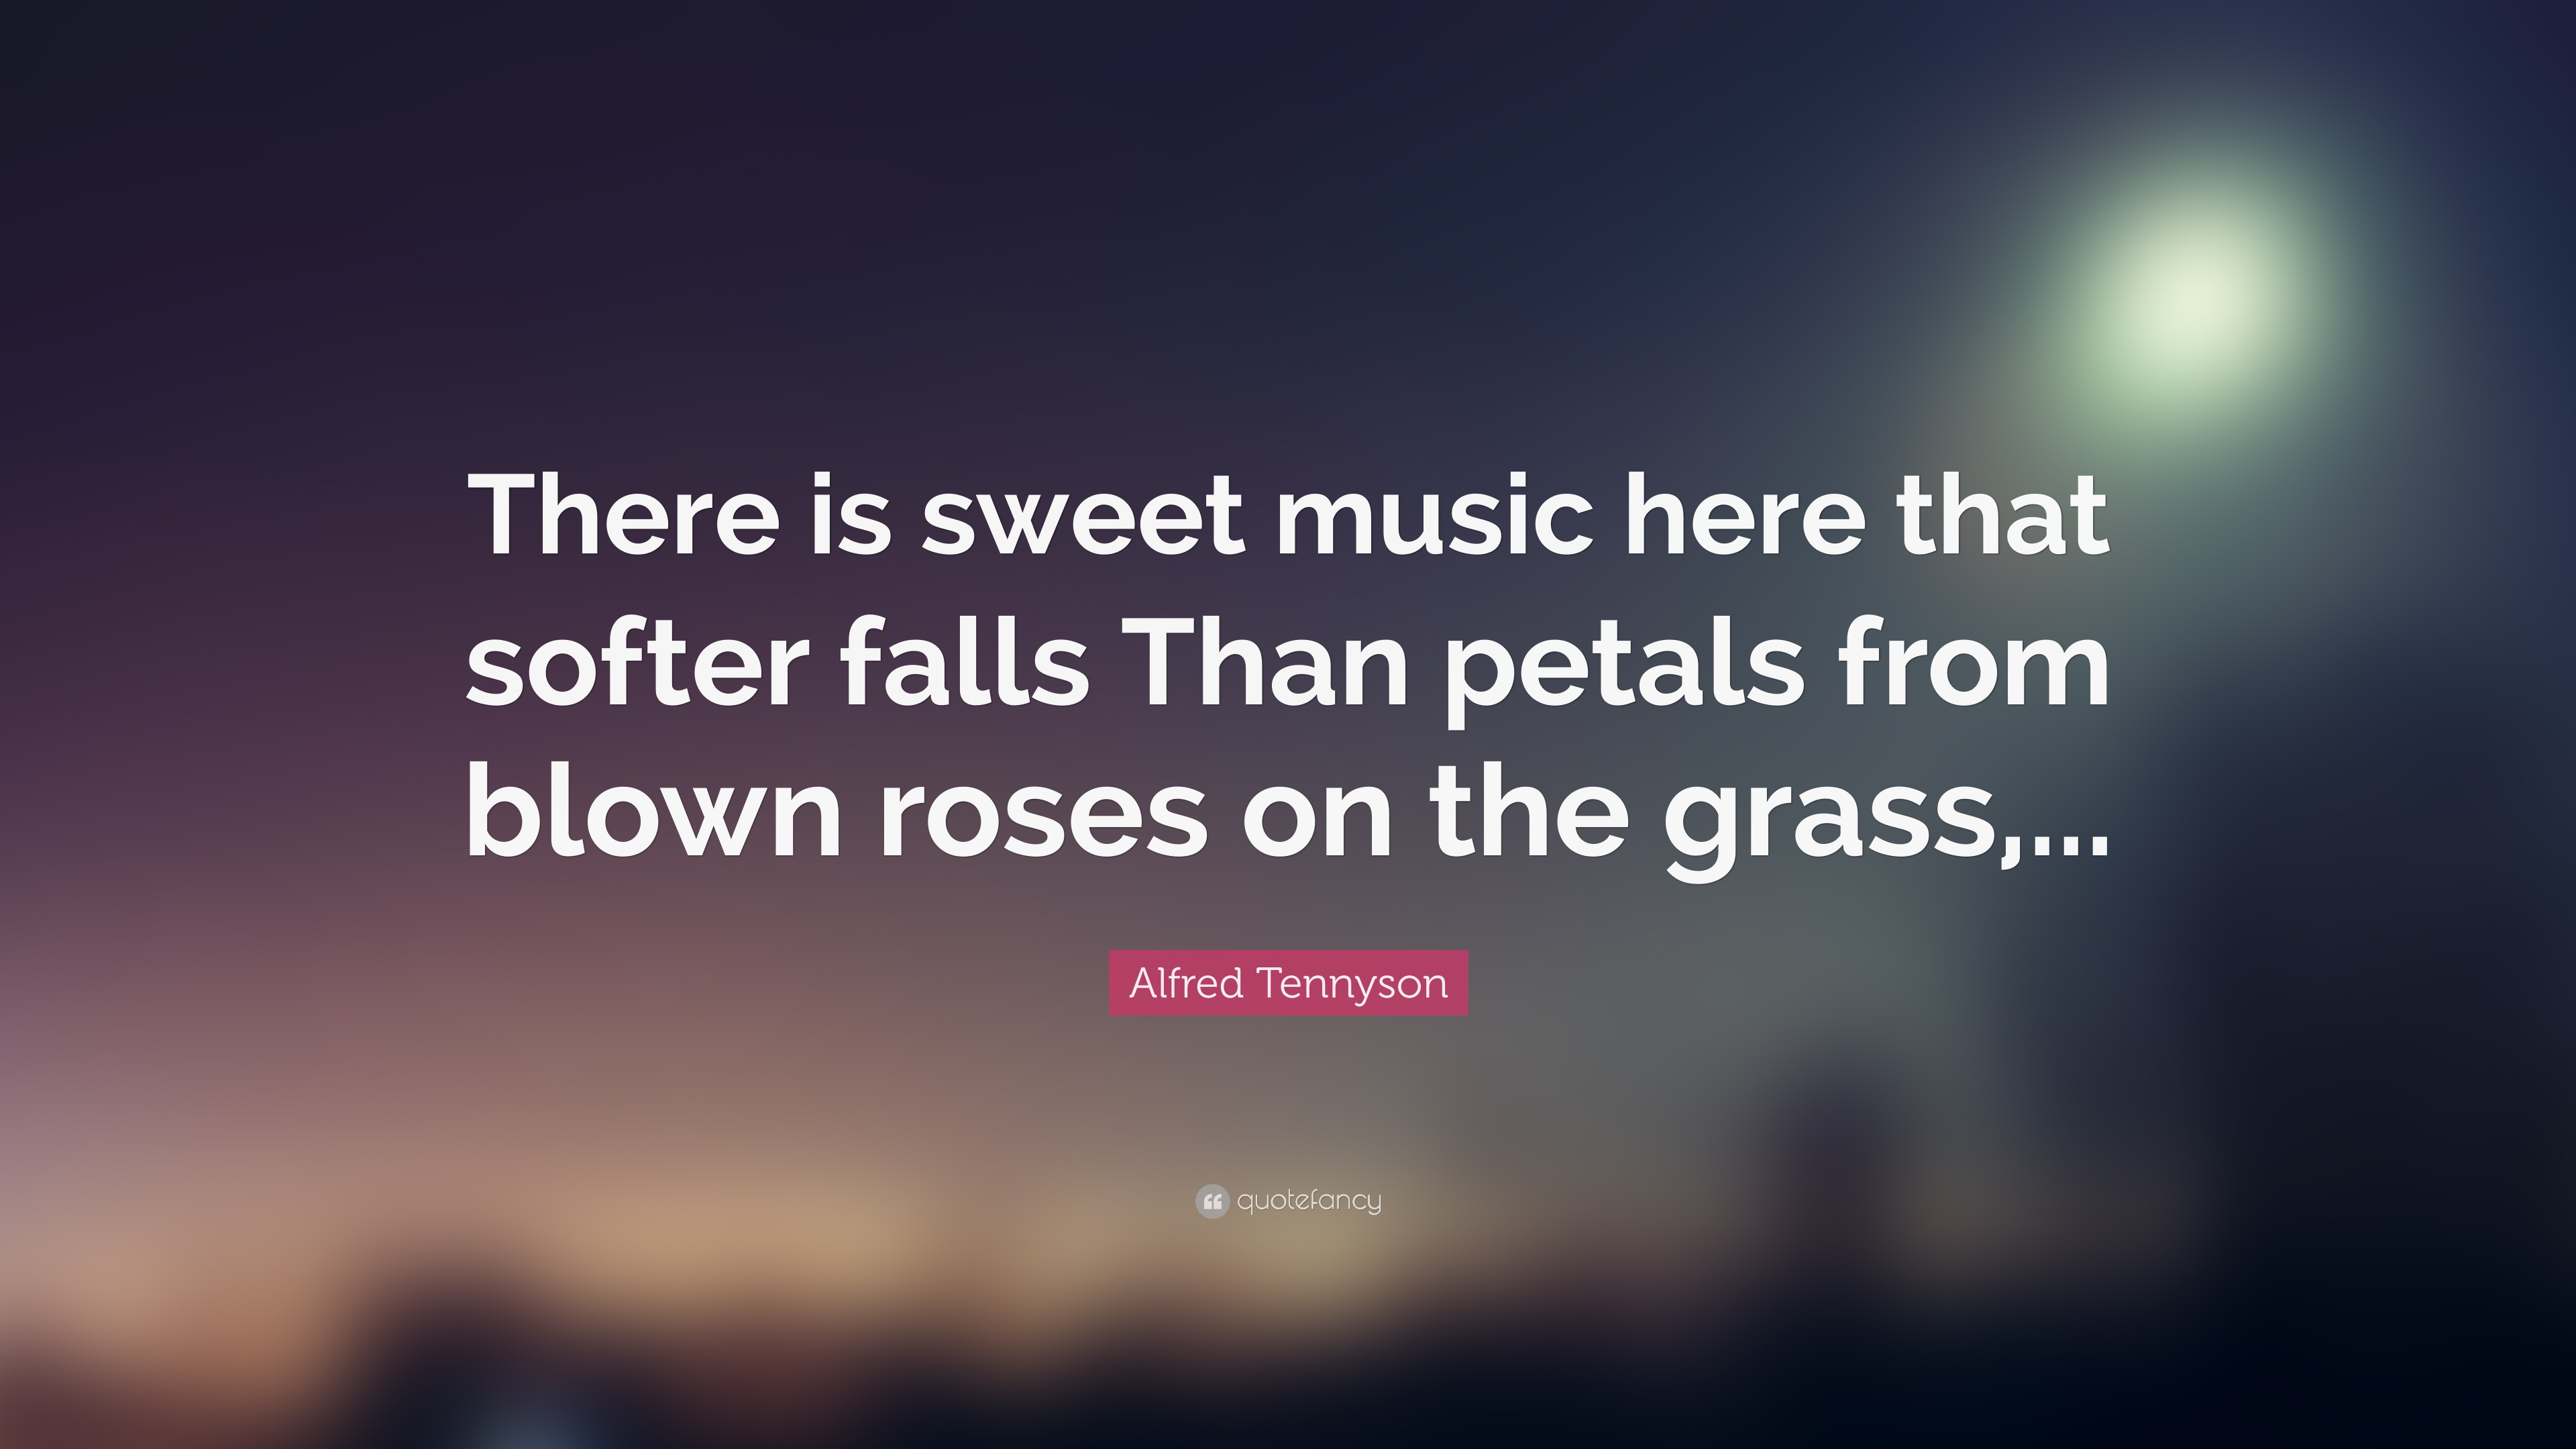 there is sweet music here that softer falls